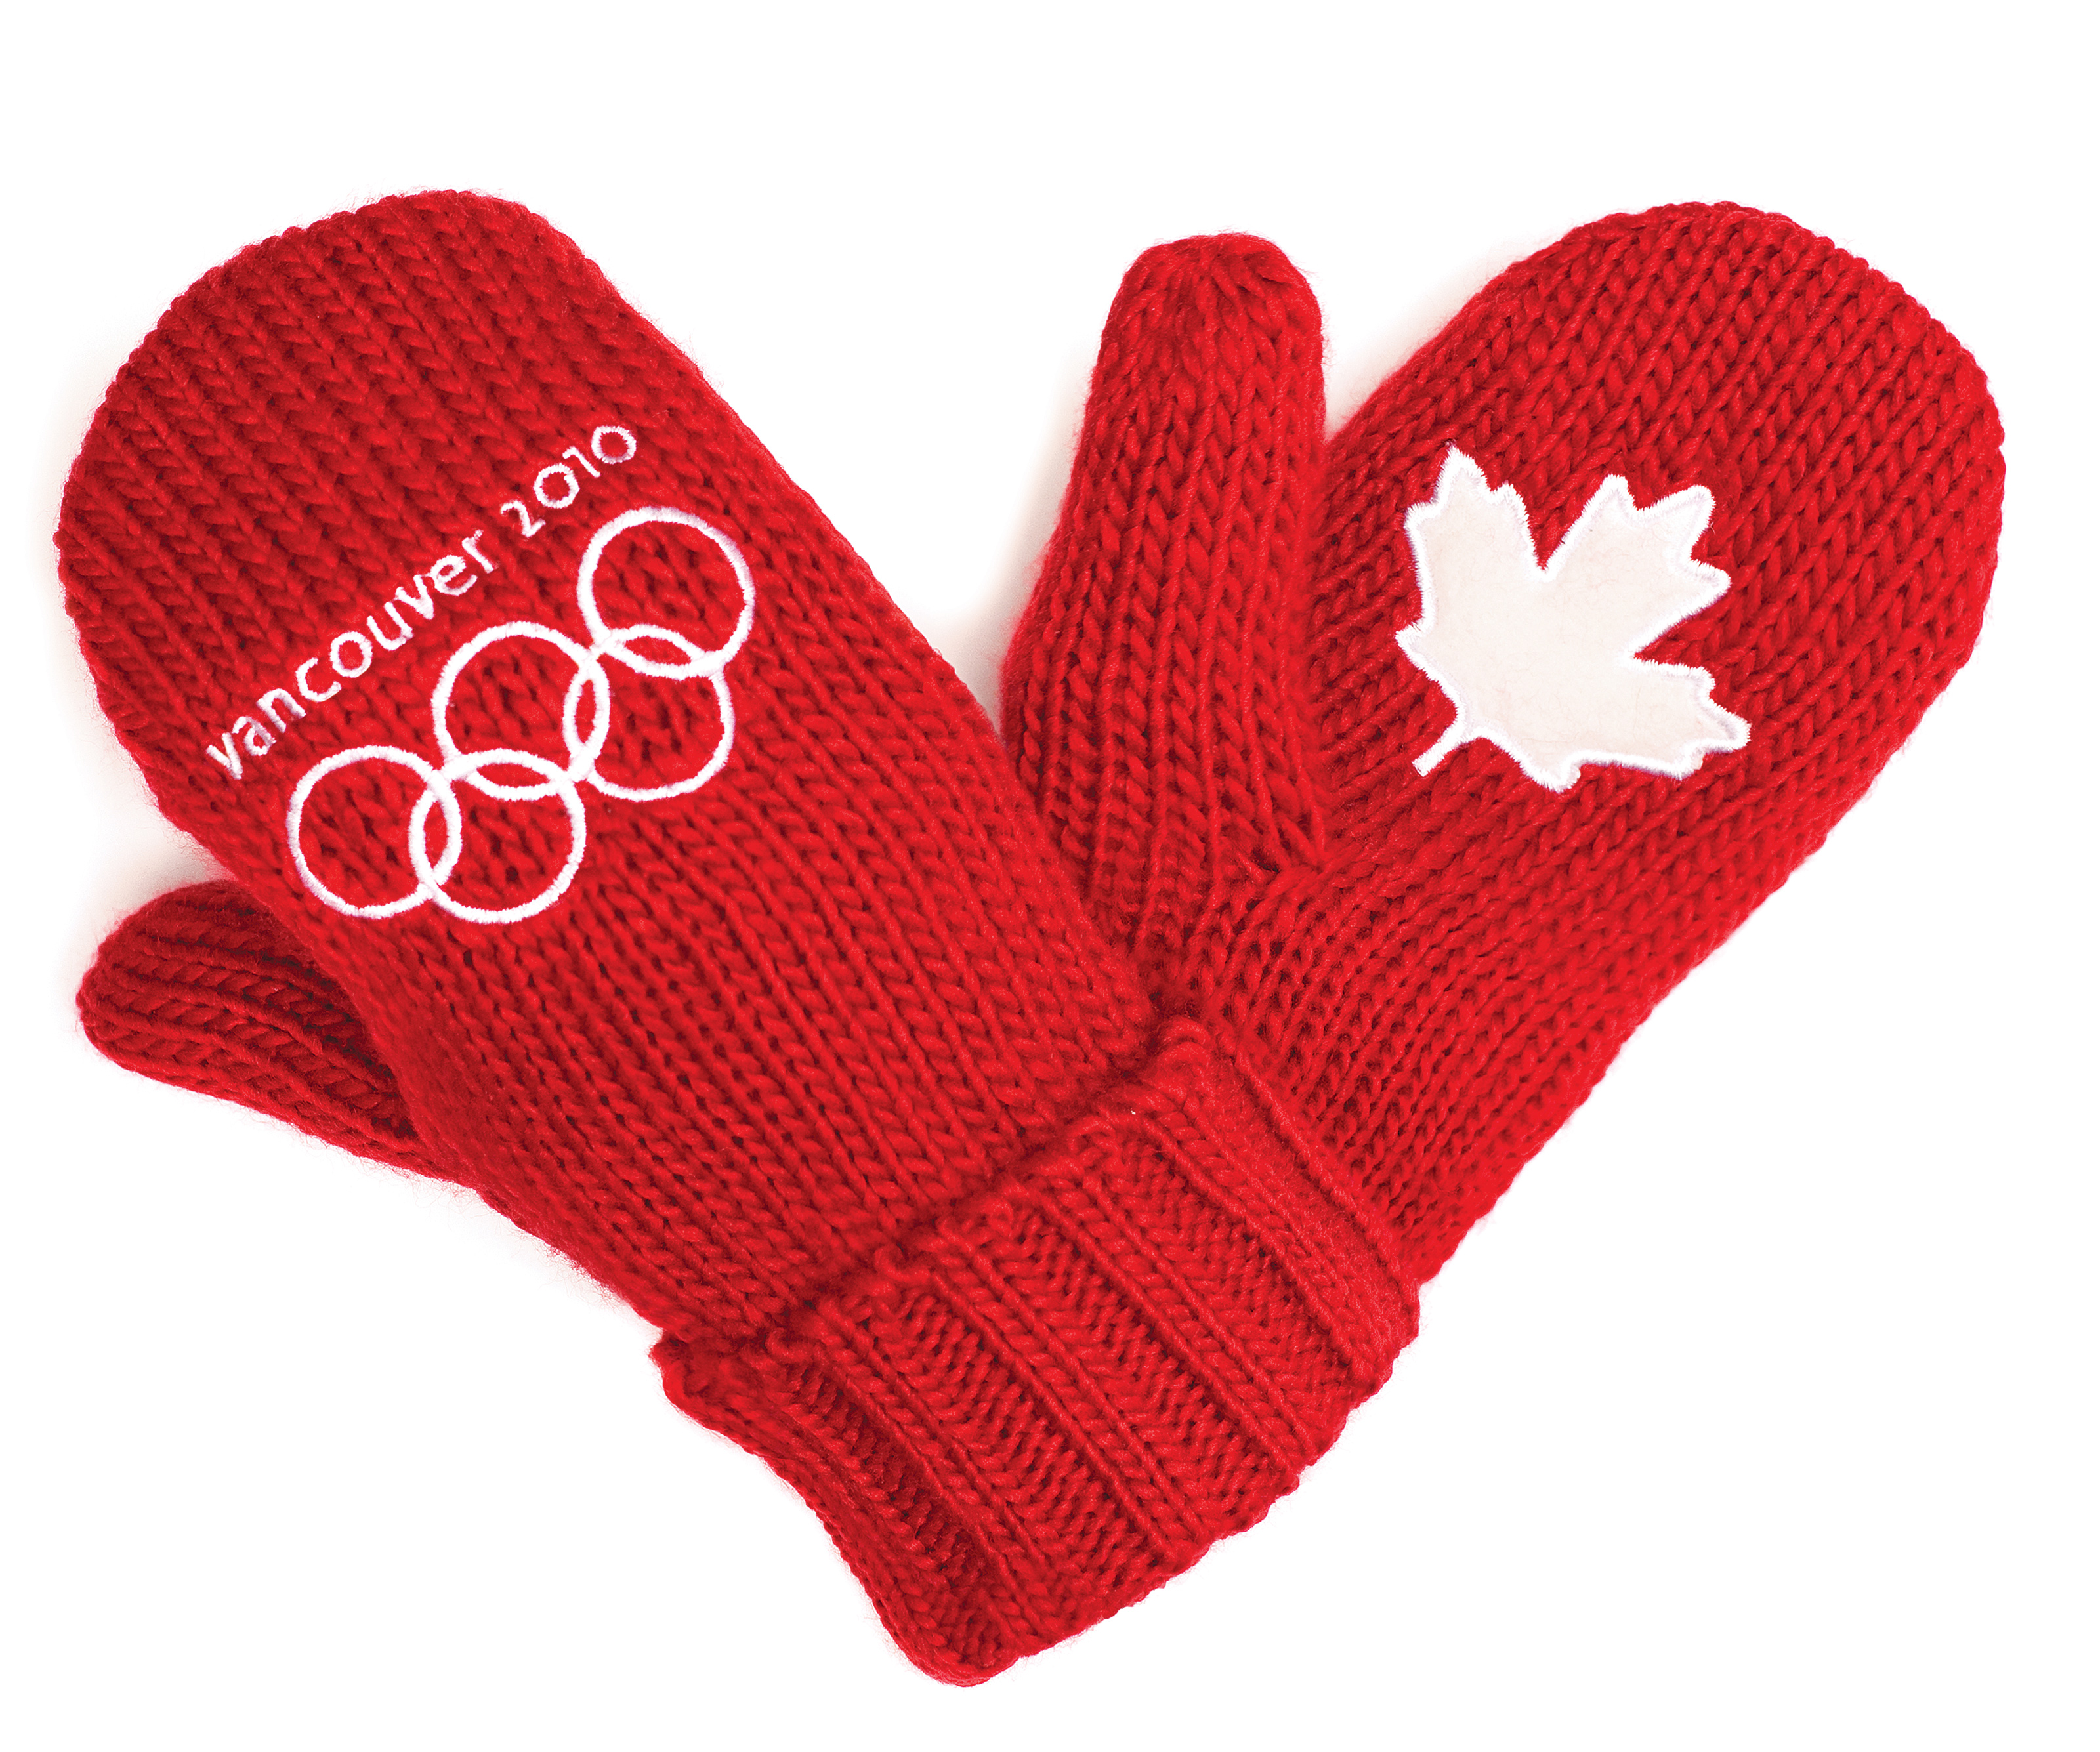 redmittens-heart-shaped-v-web2_22original-LR.jpg